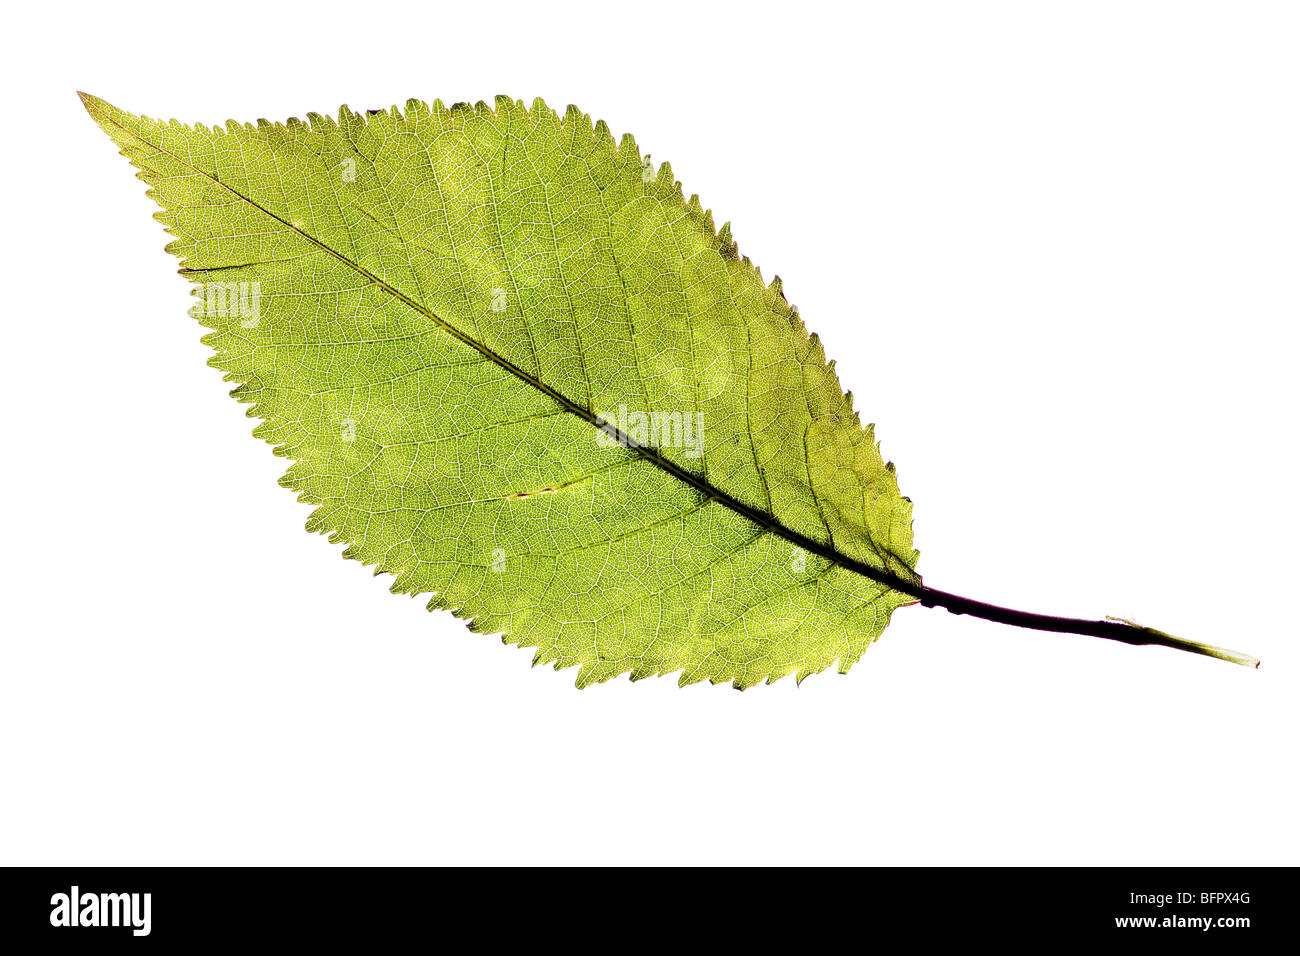 Green natural leaf isolated over a white background Photo Stock